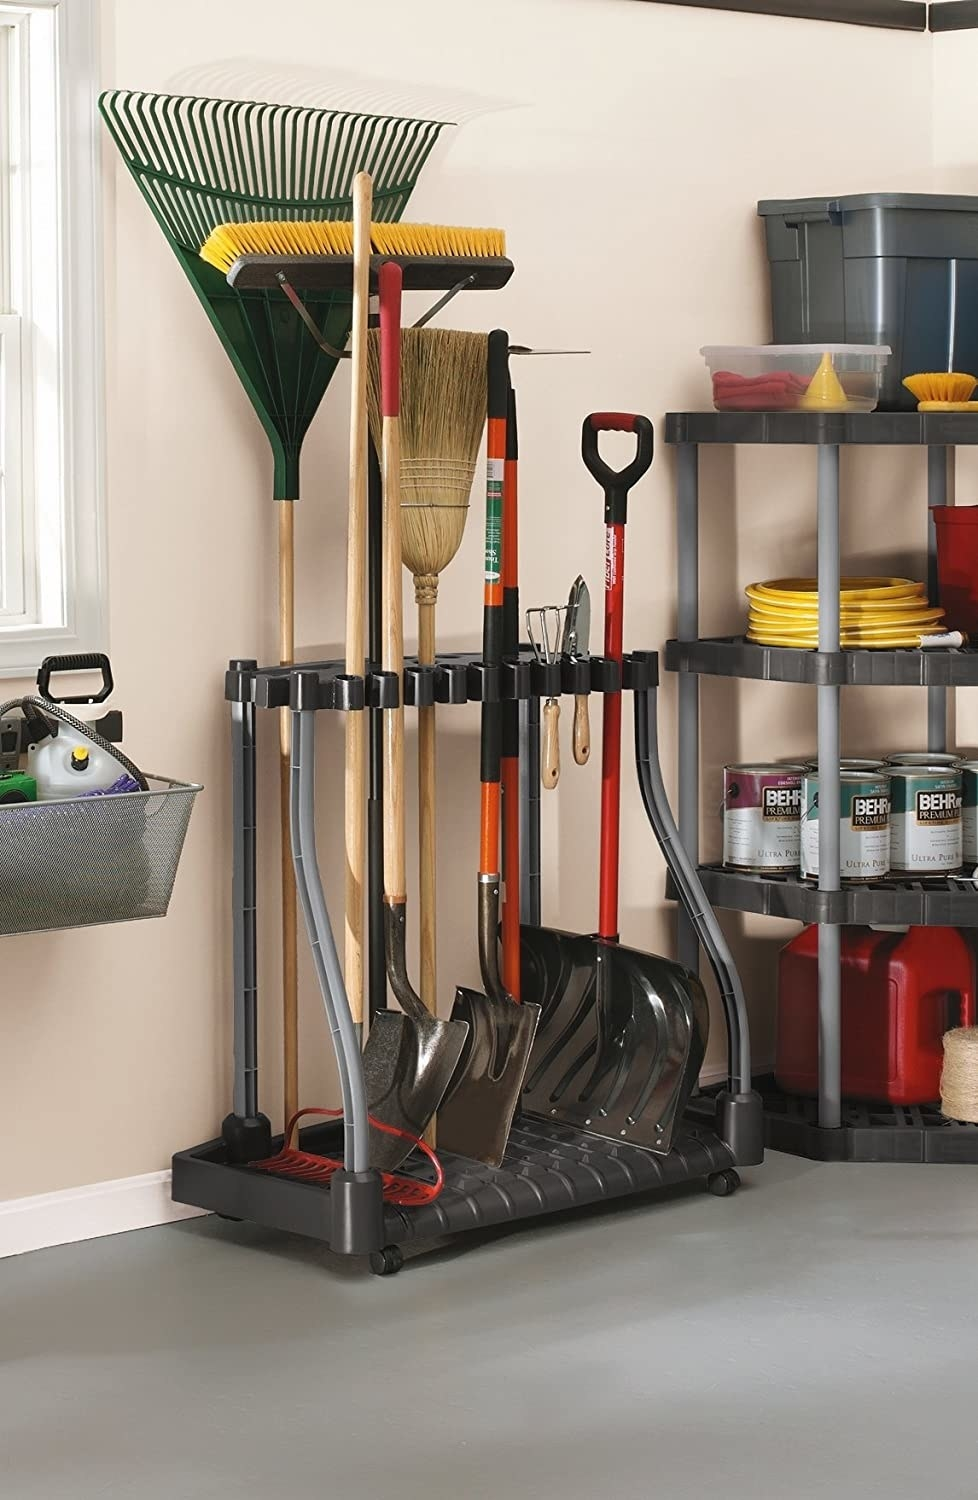 shovels and rakes in the tool organizer